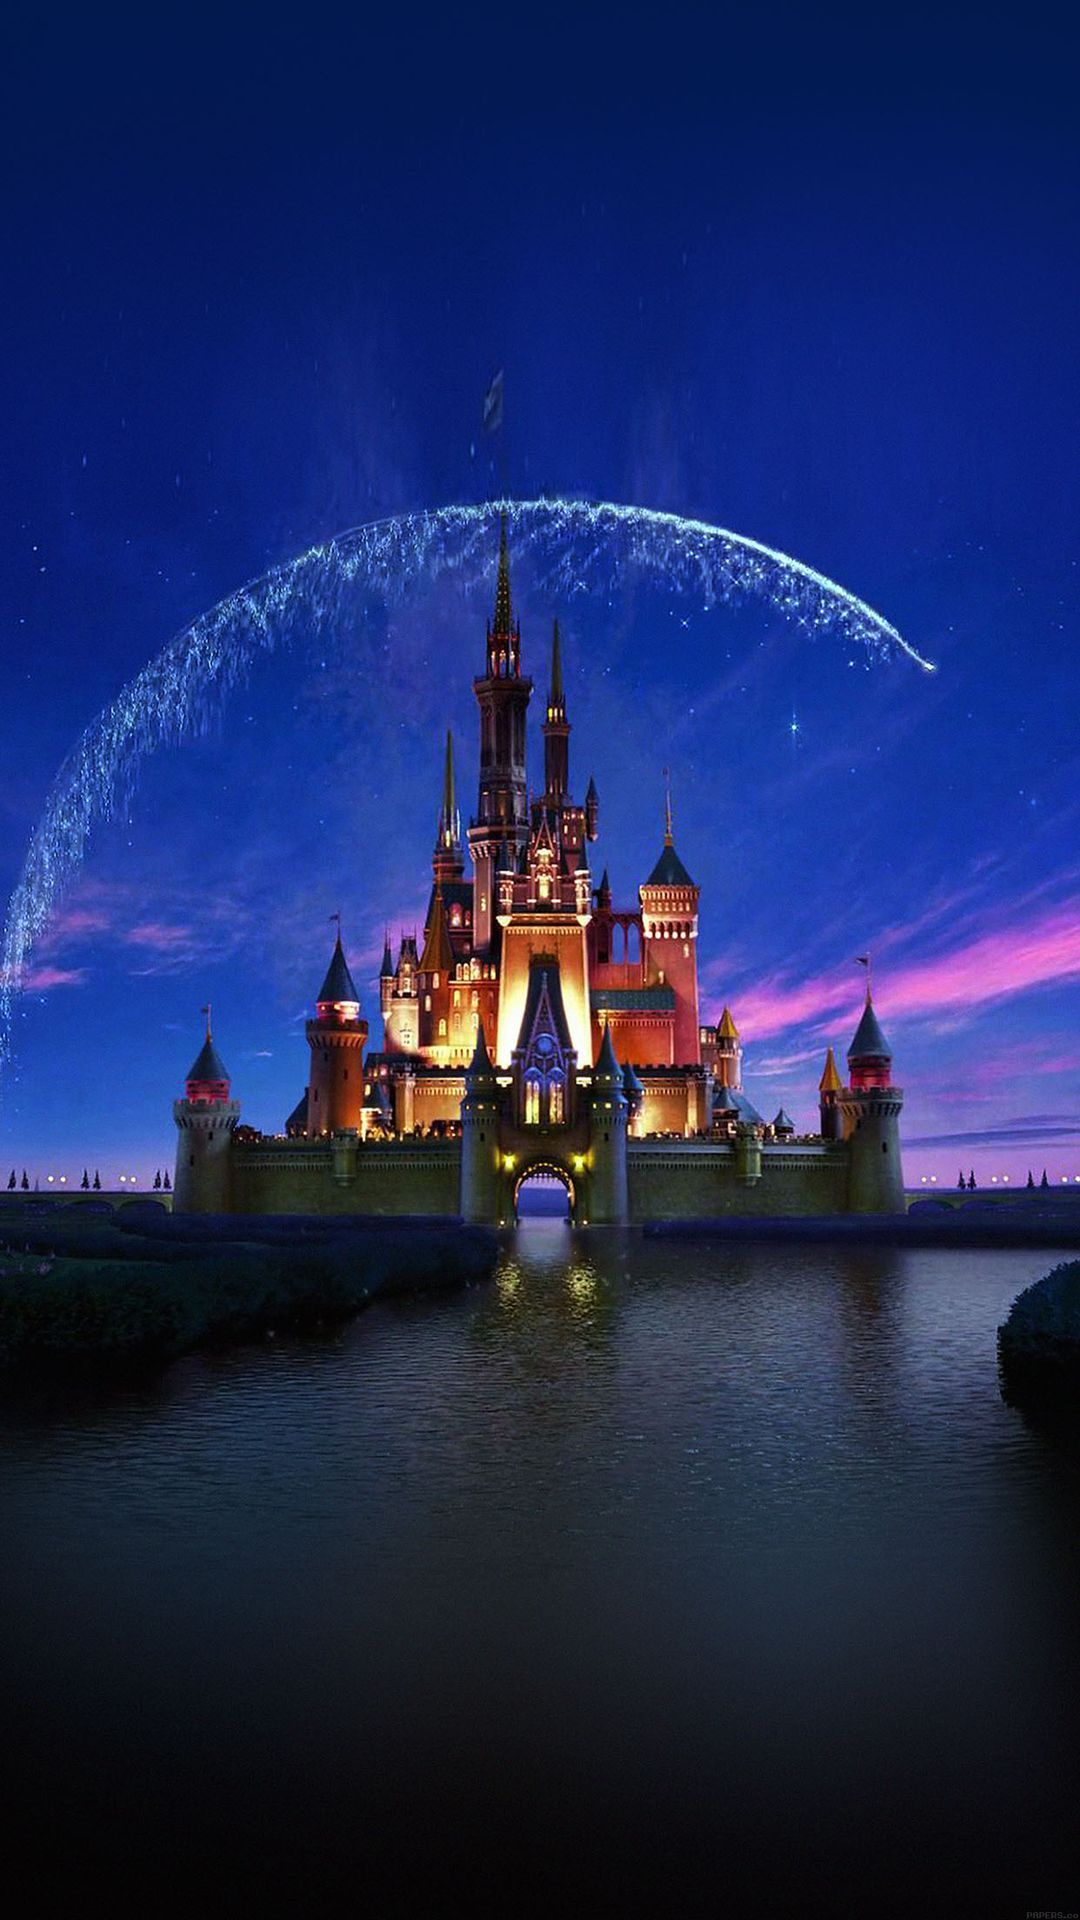 10 Latest Disney Castle Backgrounds FULL HD 1080p For PC ...